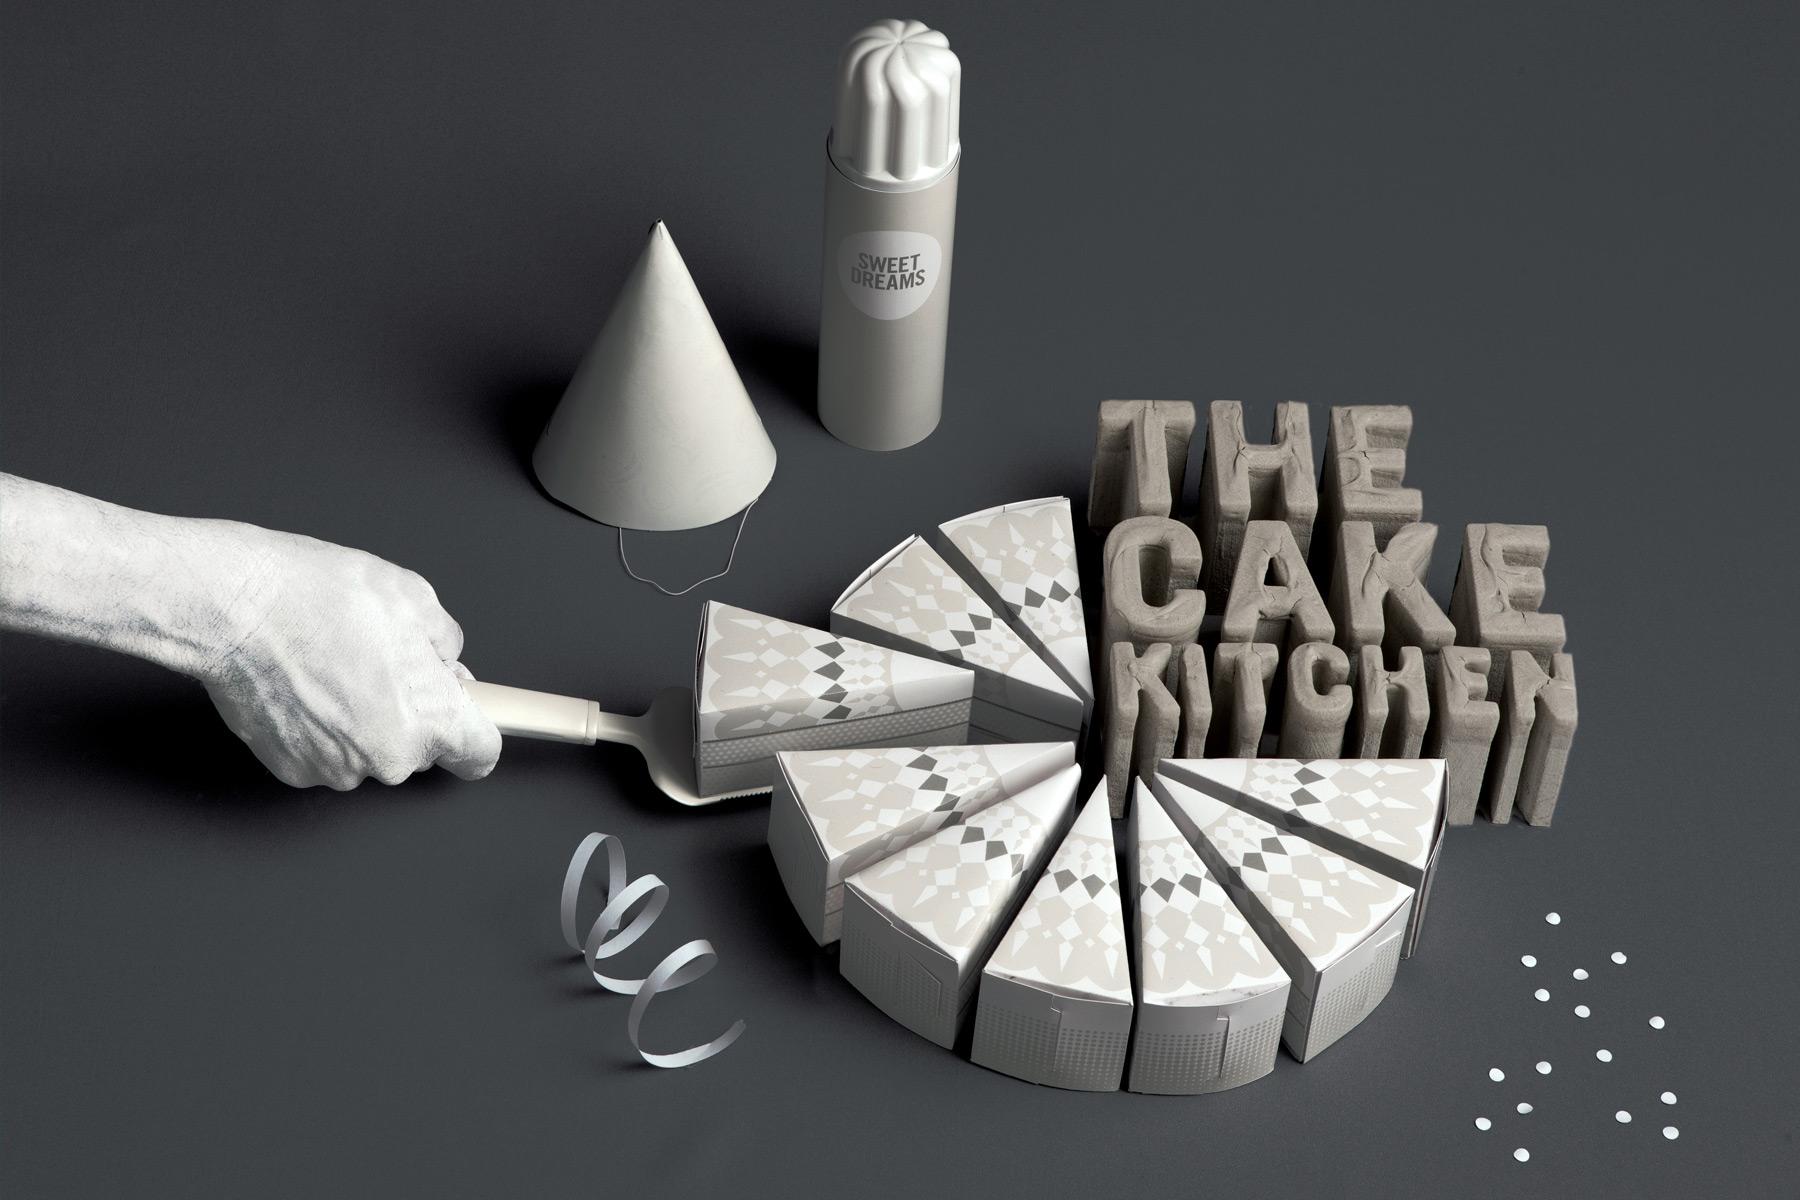 Cake-kitchen